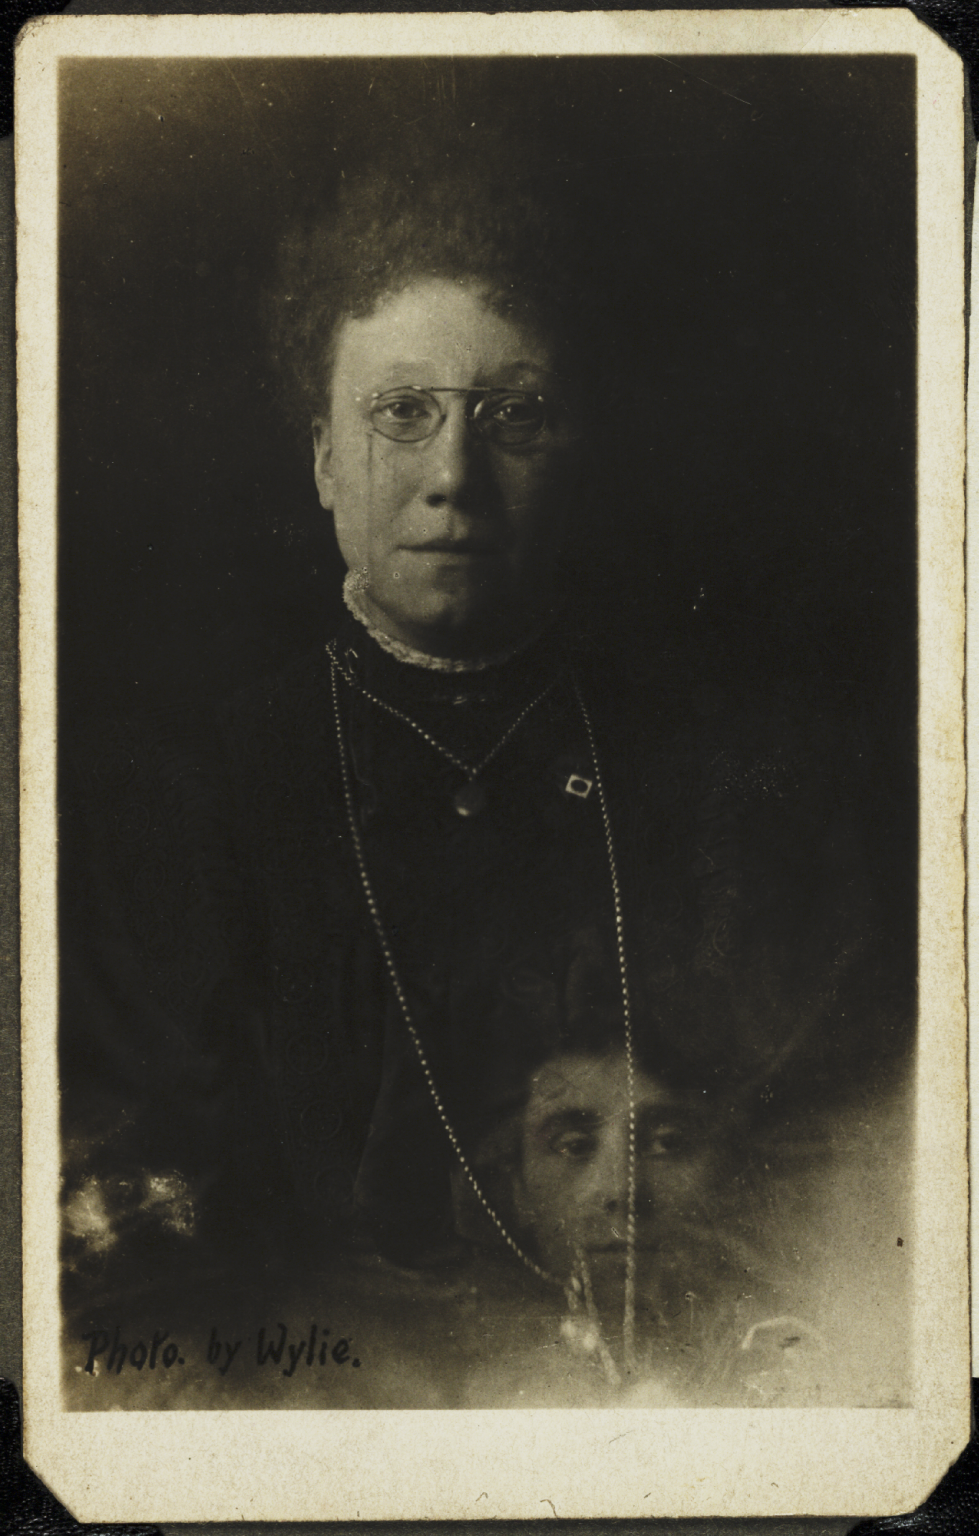 Mrs. Bentley and the spirit of her deceased sister, Wylie, c. 1920.